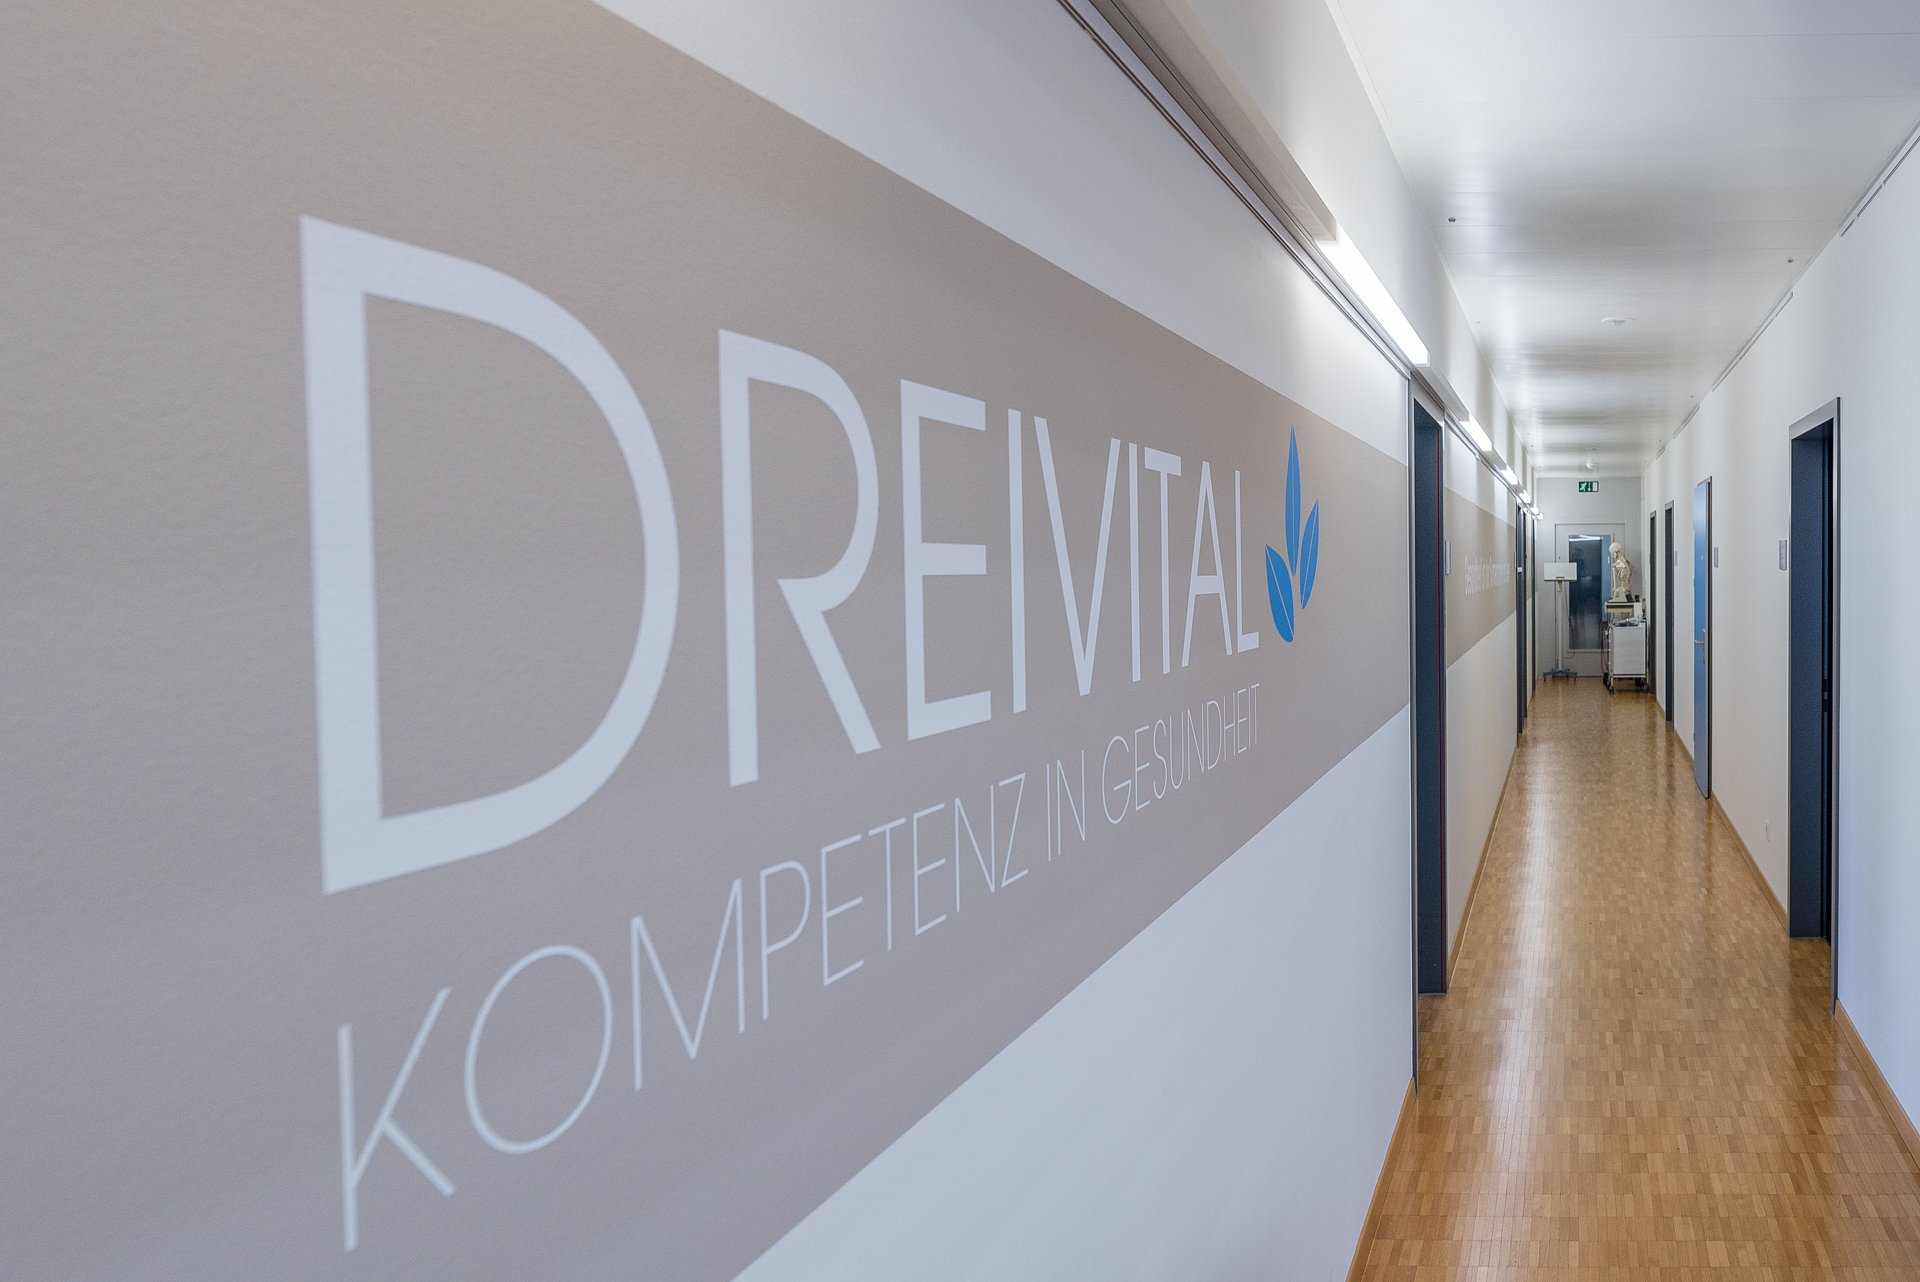 Dreivital Physiotherapie